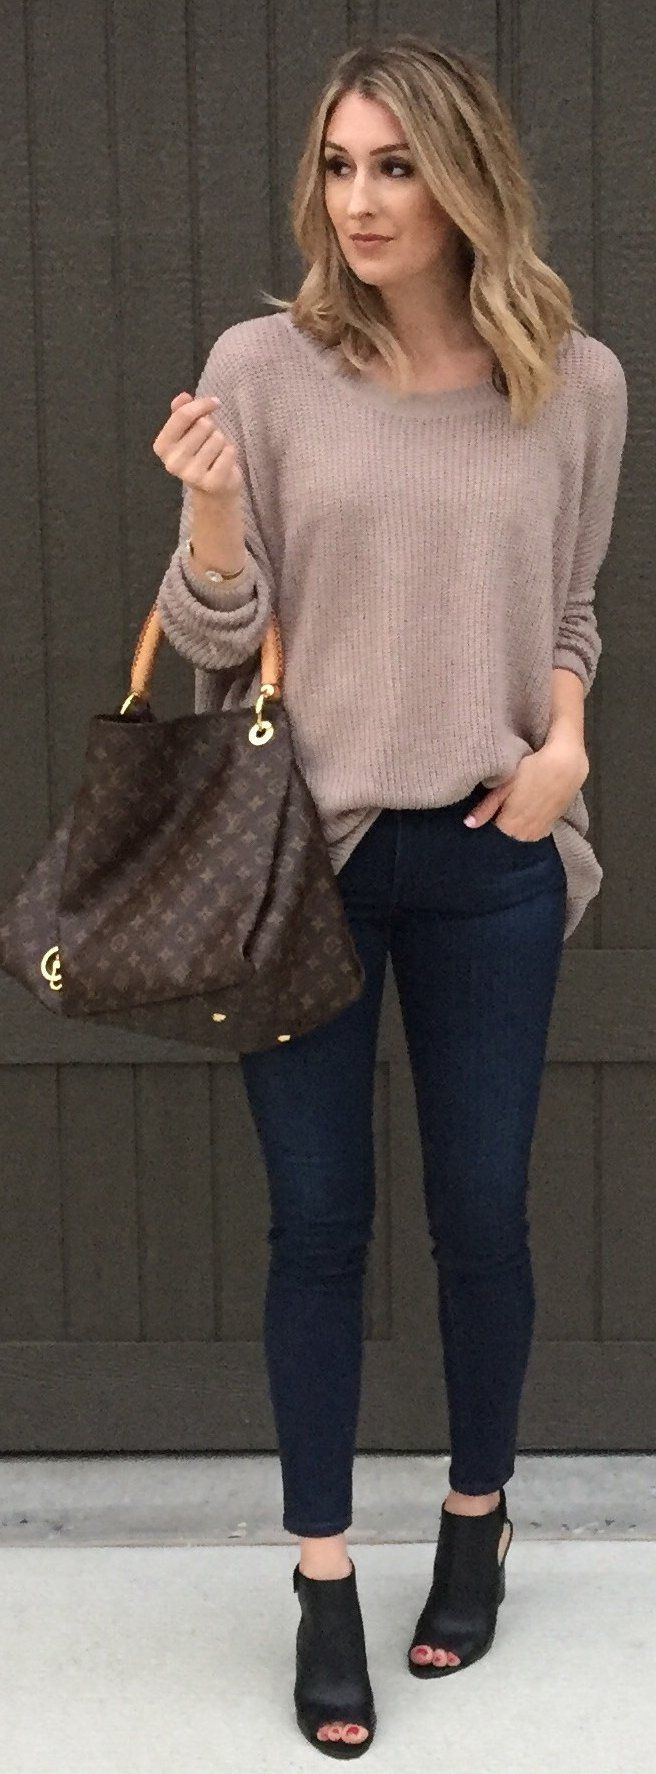 #winter #fashion / Beige Knit / Navy Skinny Jeans / Black Open Toe Booties / Brown Printed Tote Bag